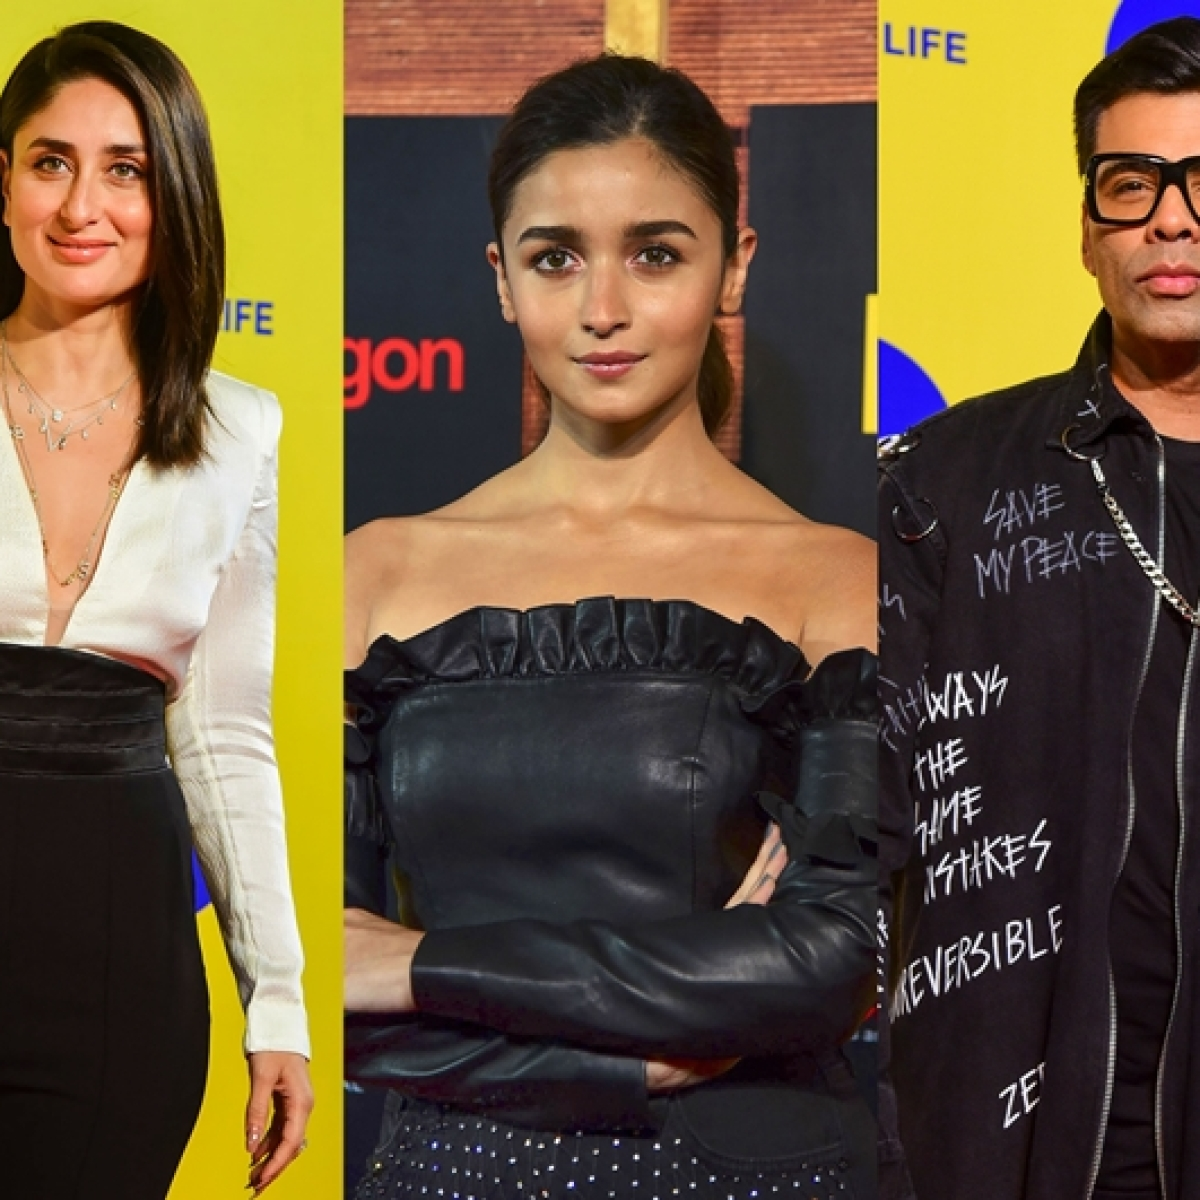 Video: Alia drops the F-bomb on stage, leaves Kareena shocked, KJo asks 'Is this how I raised you?'